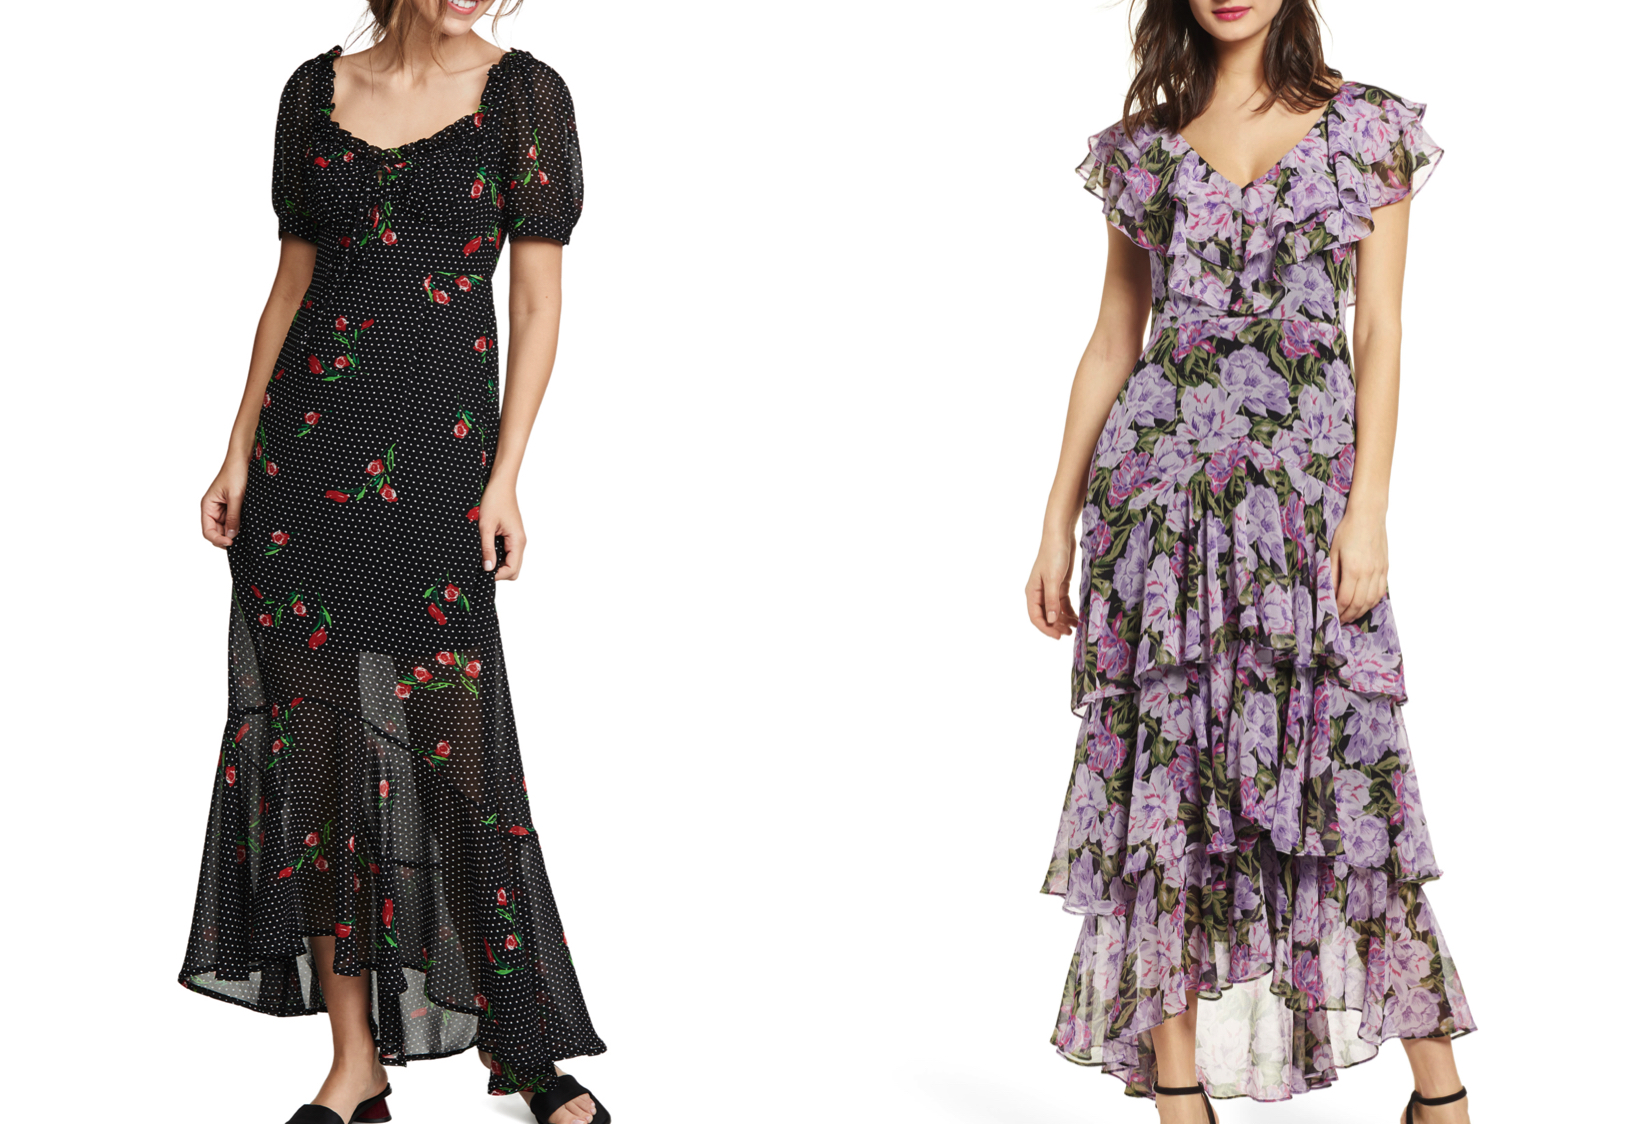 On the beach, in your suitcase, for the wedding guest — these 10 summer dresses cover it. From bohemian to semi-formal, all the sundresses you need.